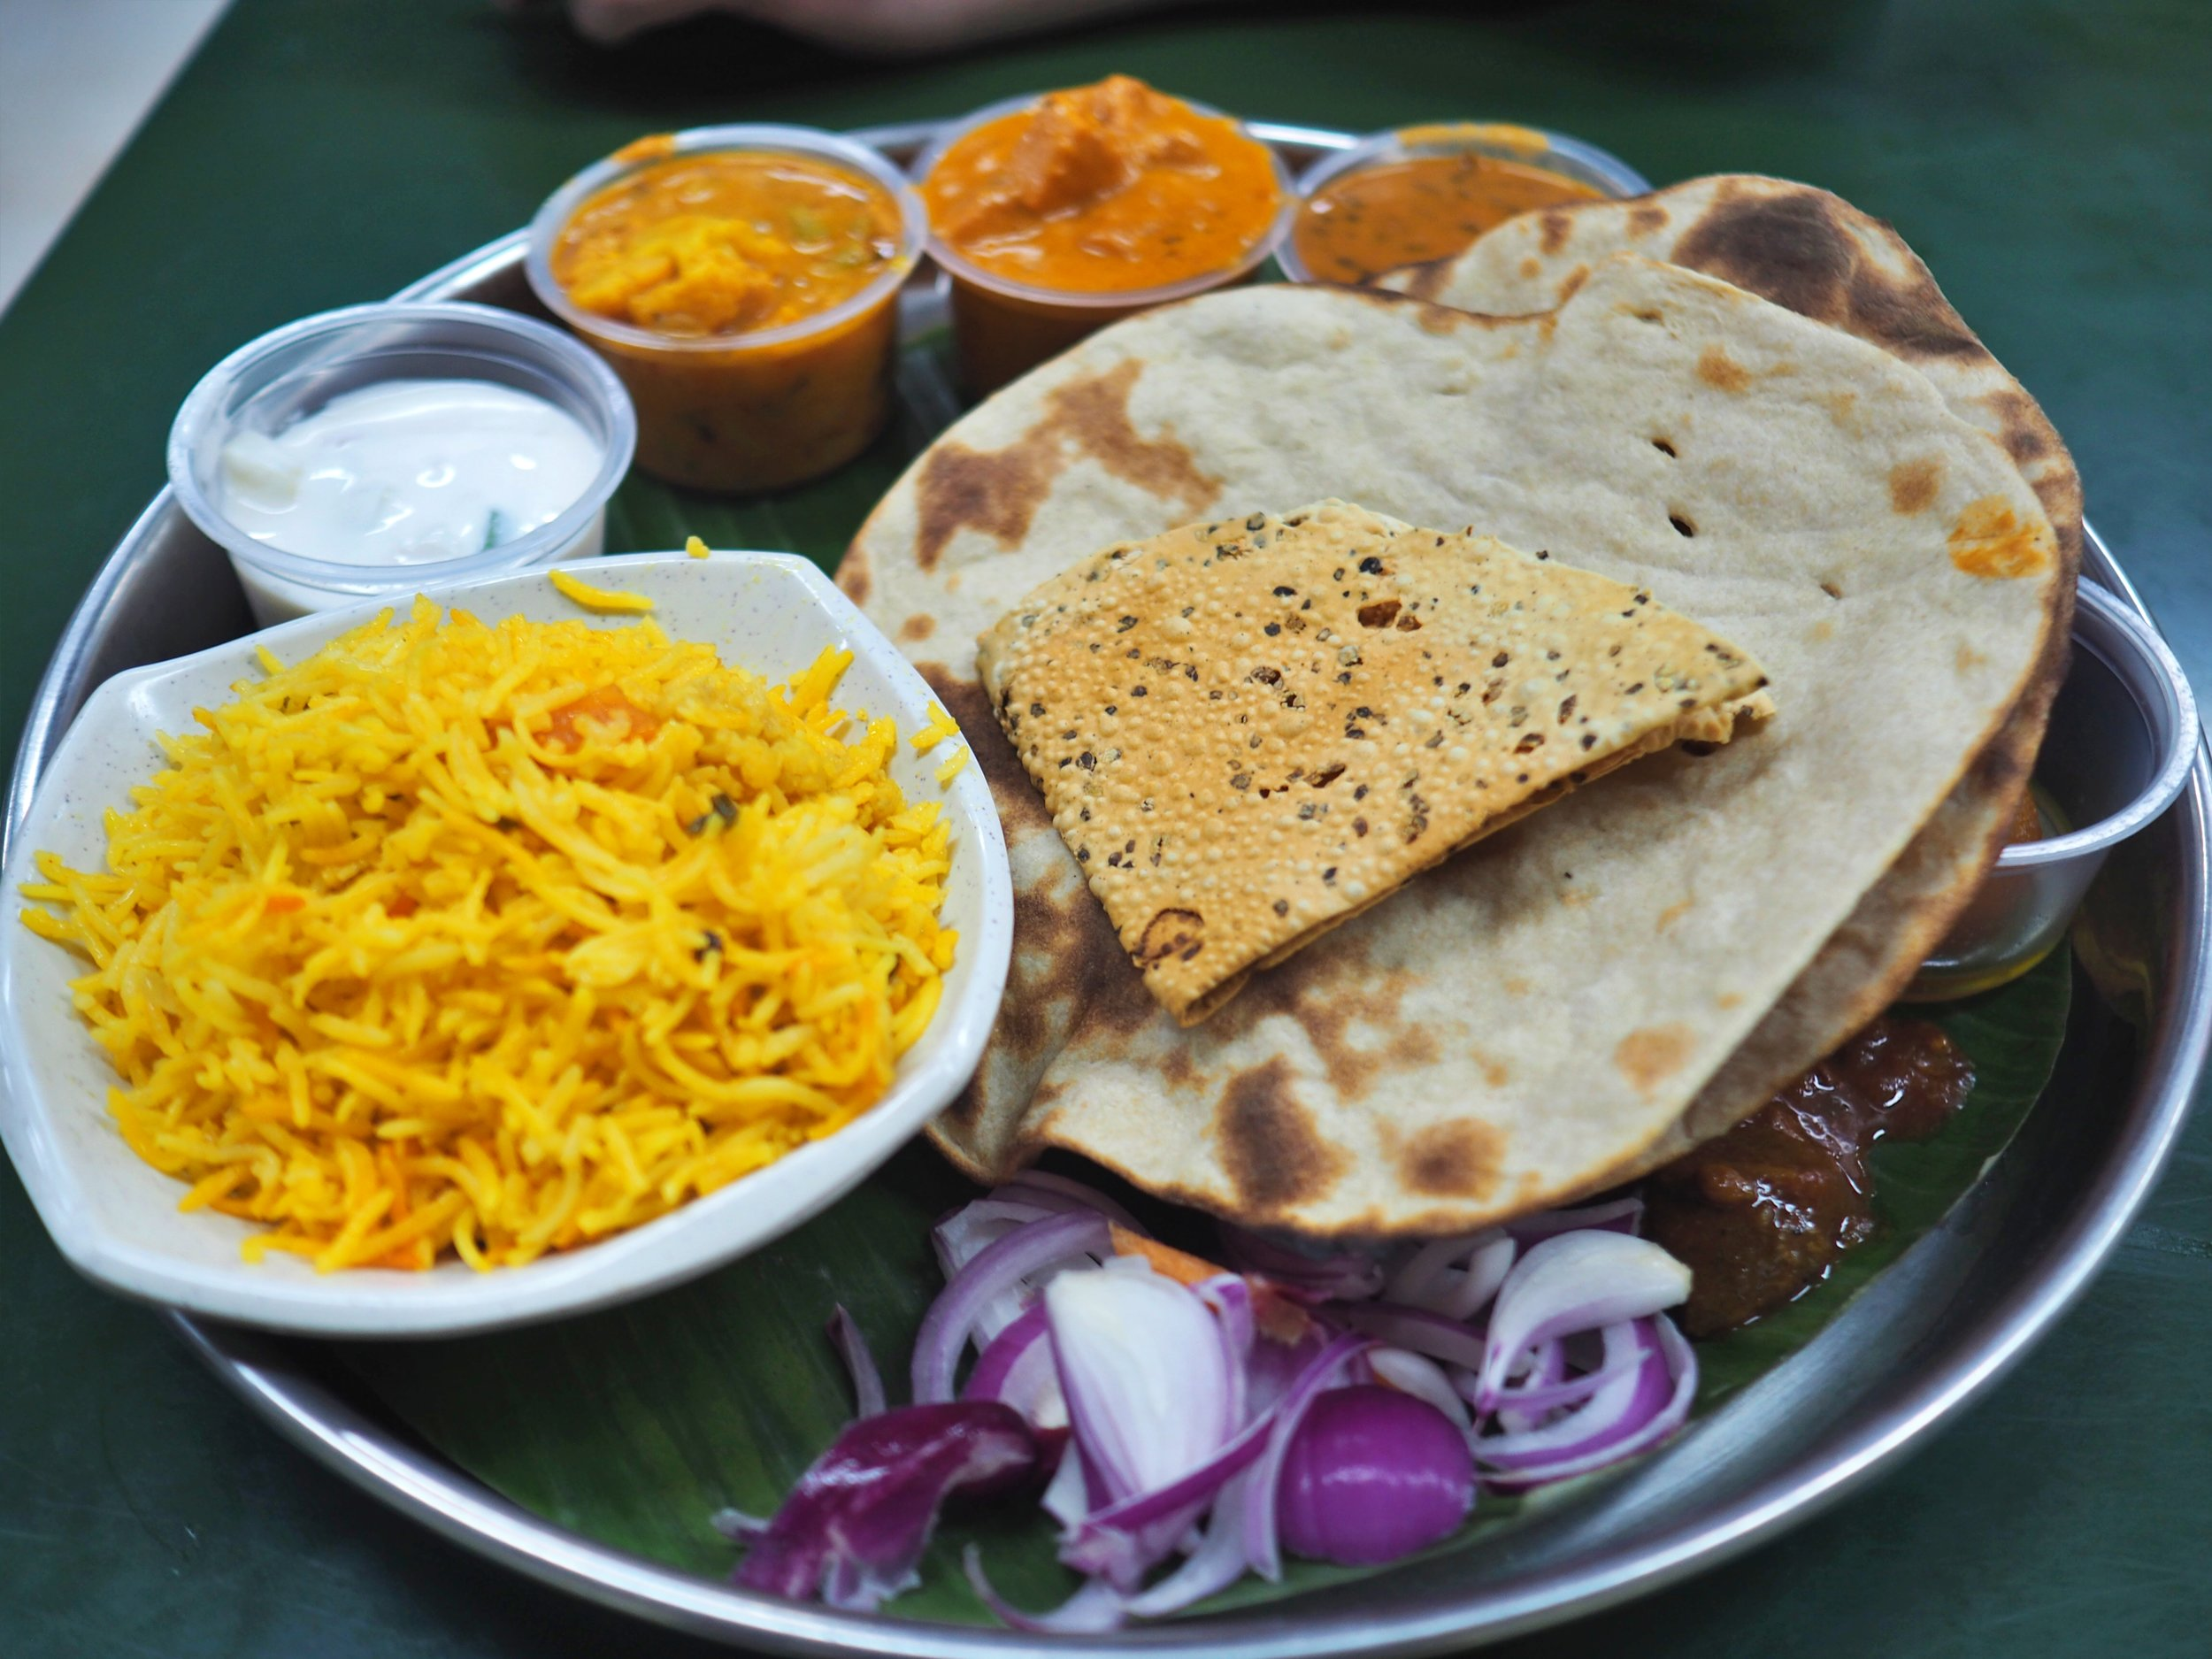 Yes, this Indian thali is very tasty, but you might want to wait a few days before eating it